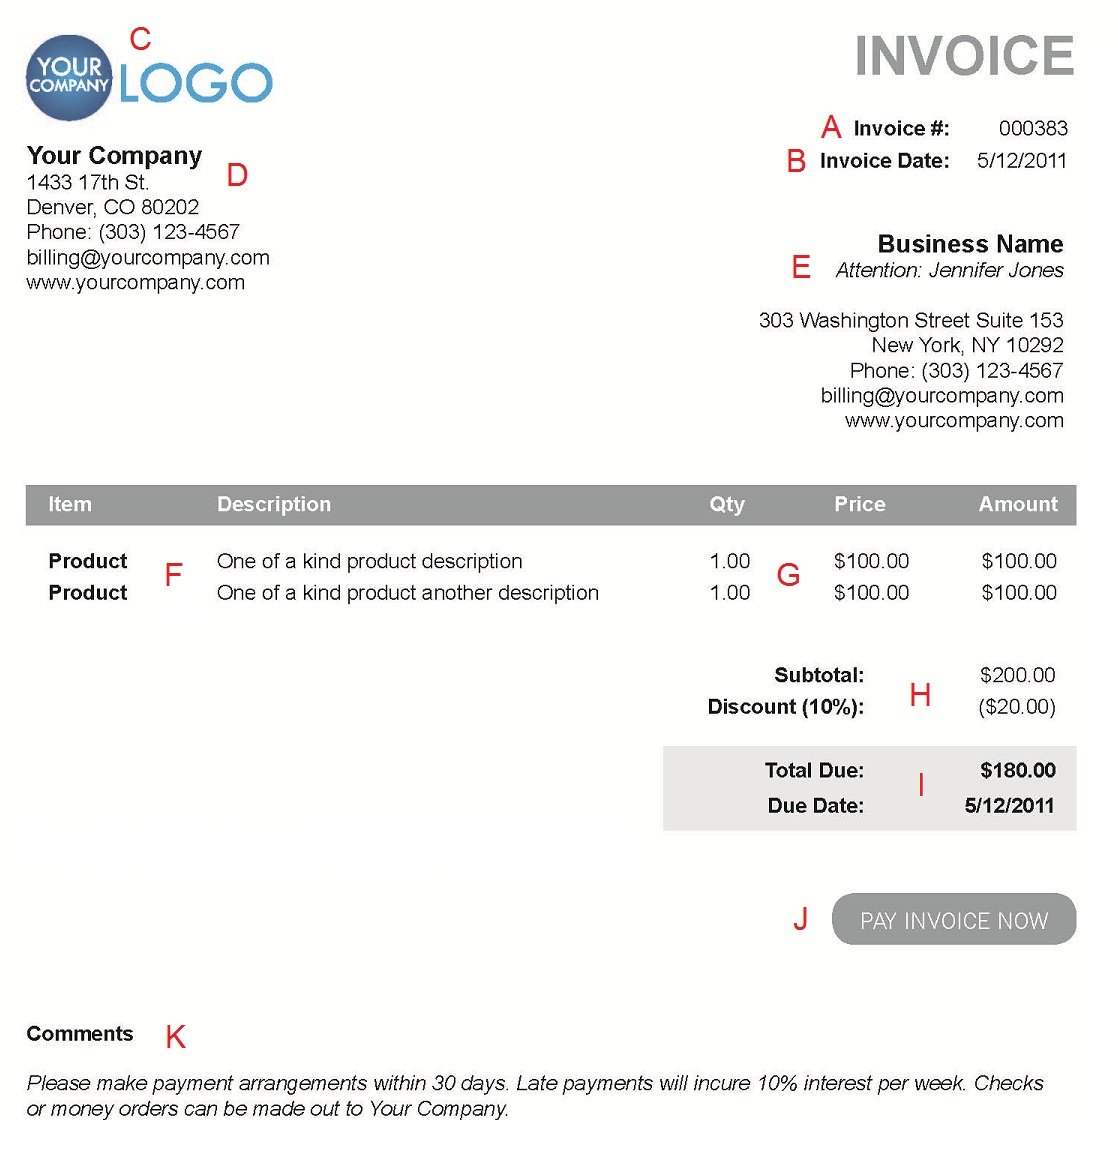 Usdgus  Picturesque The  Different Sections Of An Electronic Payment Invoice With Marvelous A  With Amazing Lexis Power Invoice Also Golden Gate Bridge Toll Invoice In Addition Purchase Order Vs Invoice And Quickbooks Online Invoice Templates As Well As Work Invoice Template Additionally Invoice Maker Pro From Paysimplecom With Usdgus  Marvelous The  Different Sections Of An Electronic Payment Invoice With Amazing A  And Picturesque Lexis Power Invoice Also Golden Gate Bridge Toll Invoice In Addition Purchase Order Vs Invoice From Paysimplecom